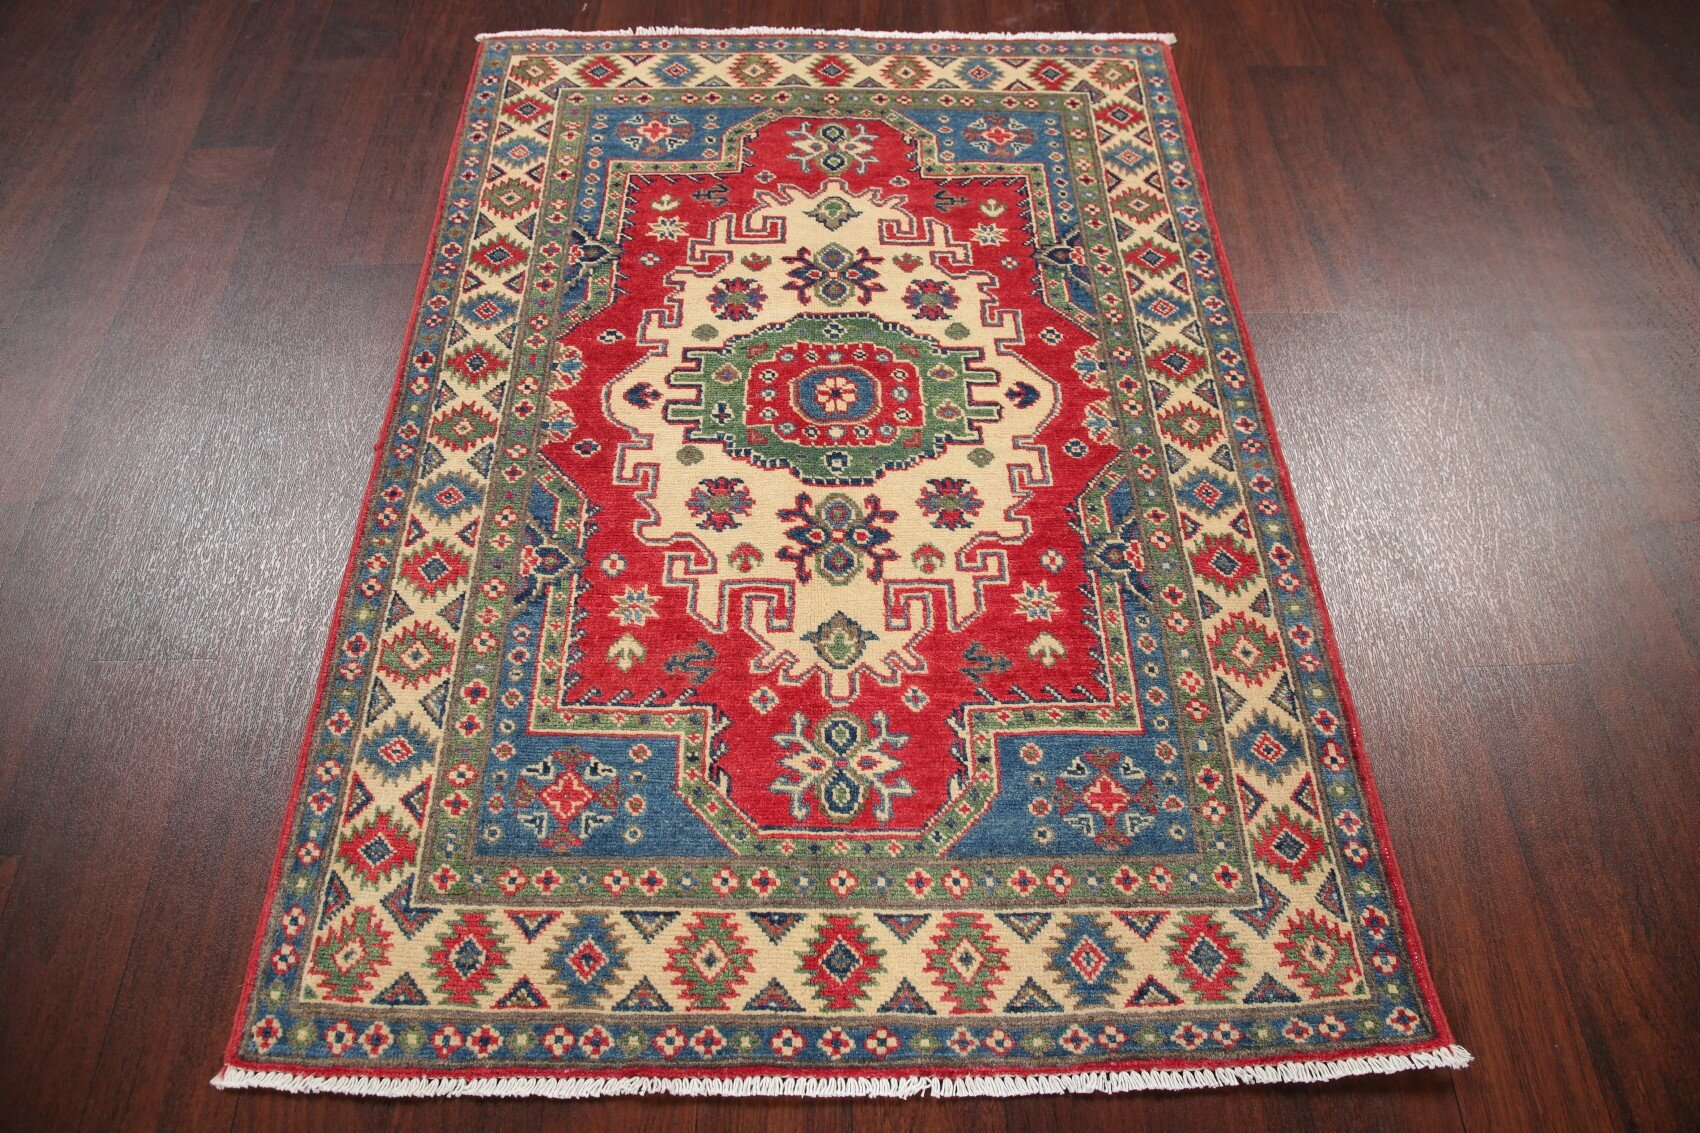 Rugsource One Of A Kind Hand Knotted 2010s Kazak Red Blue Beige 3 4 X 4 8 Wool Area Rug Wayfair